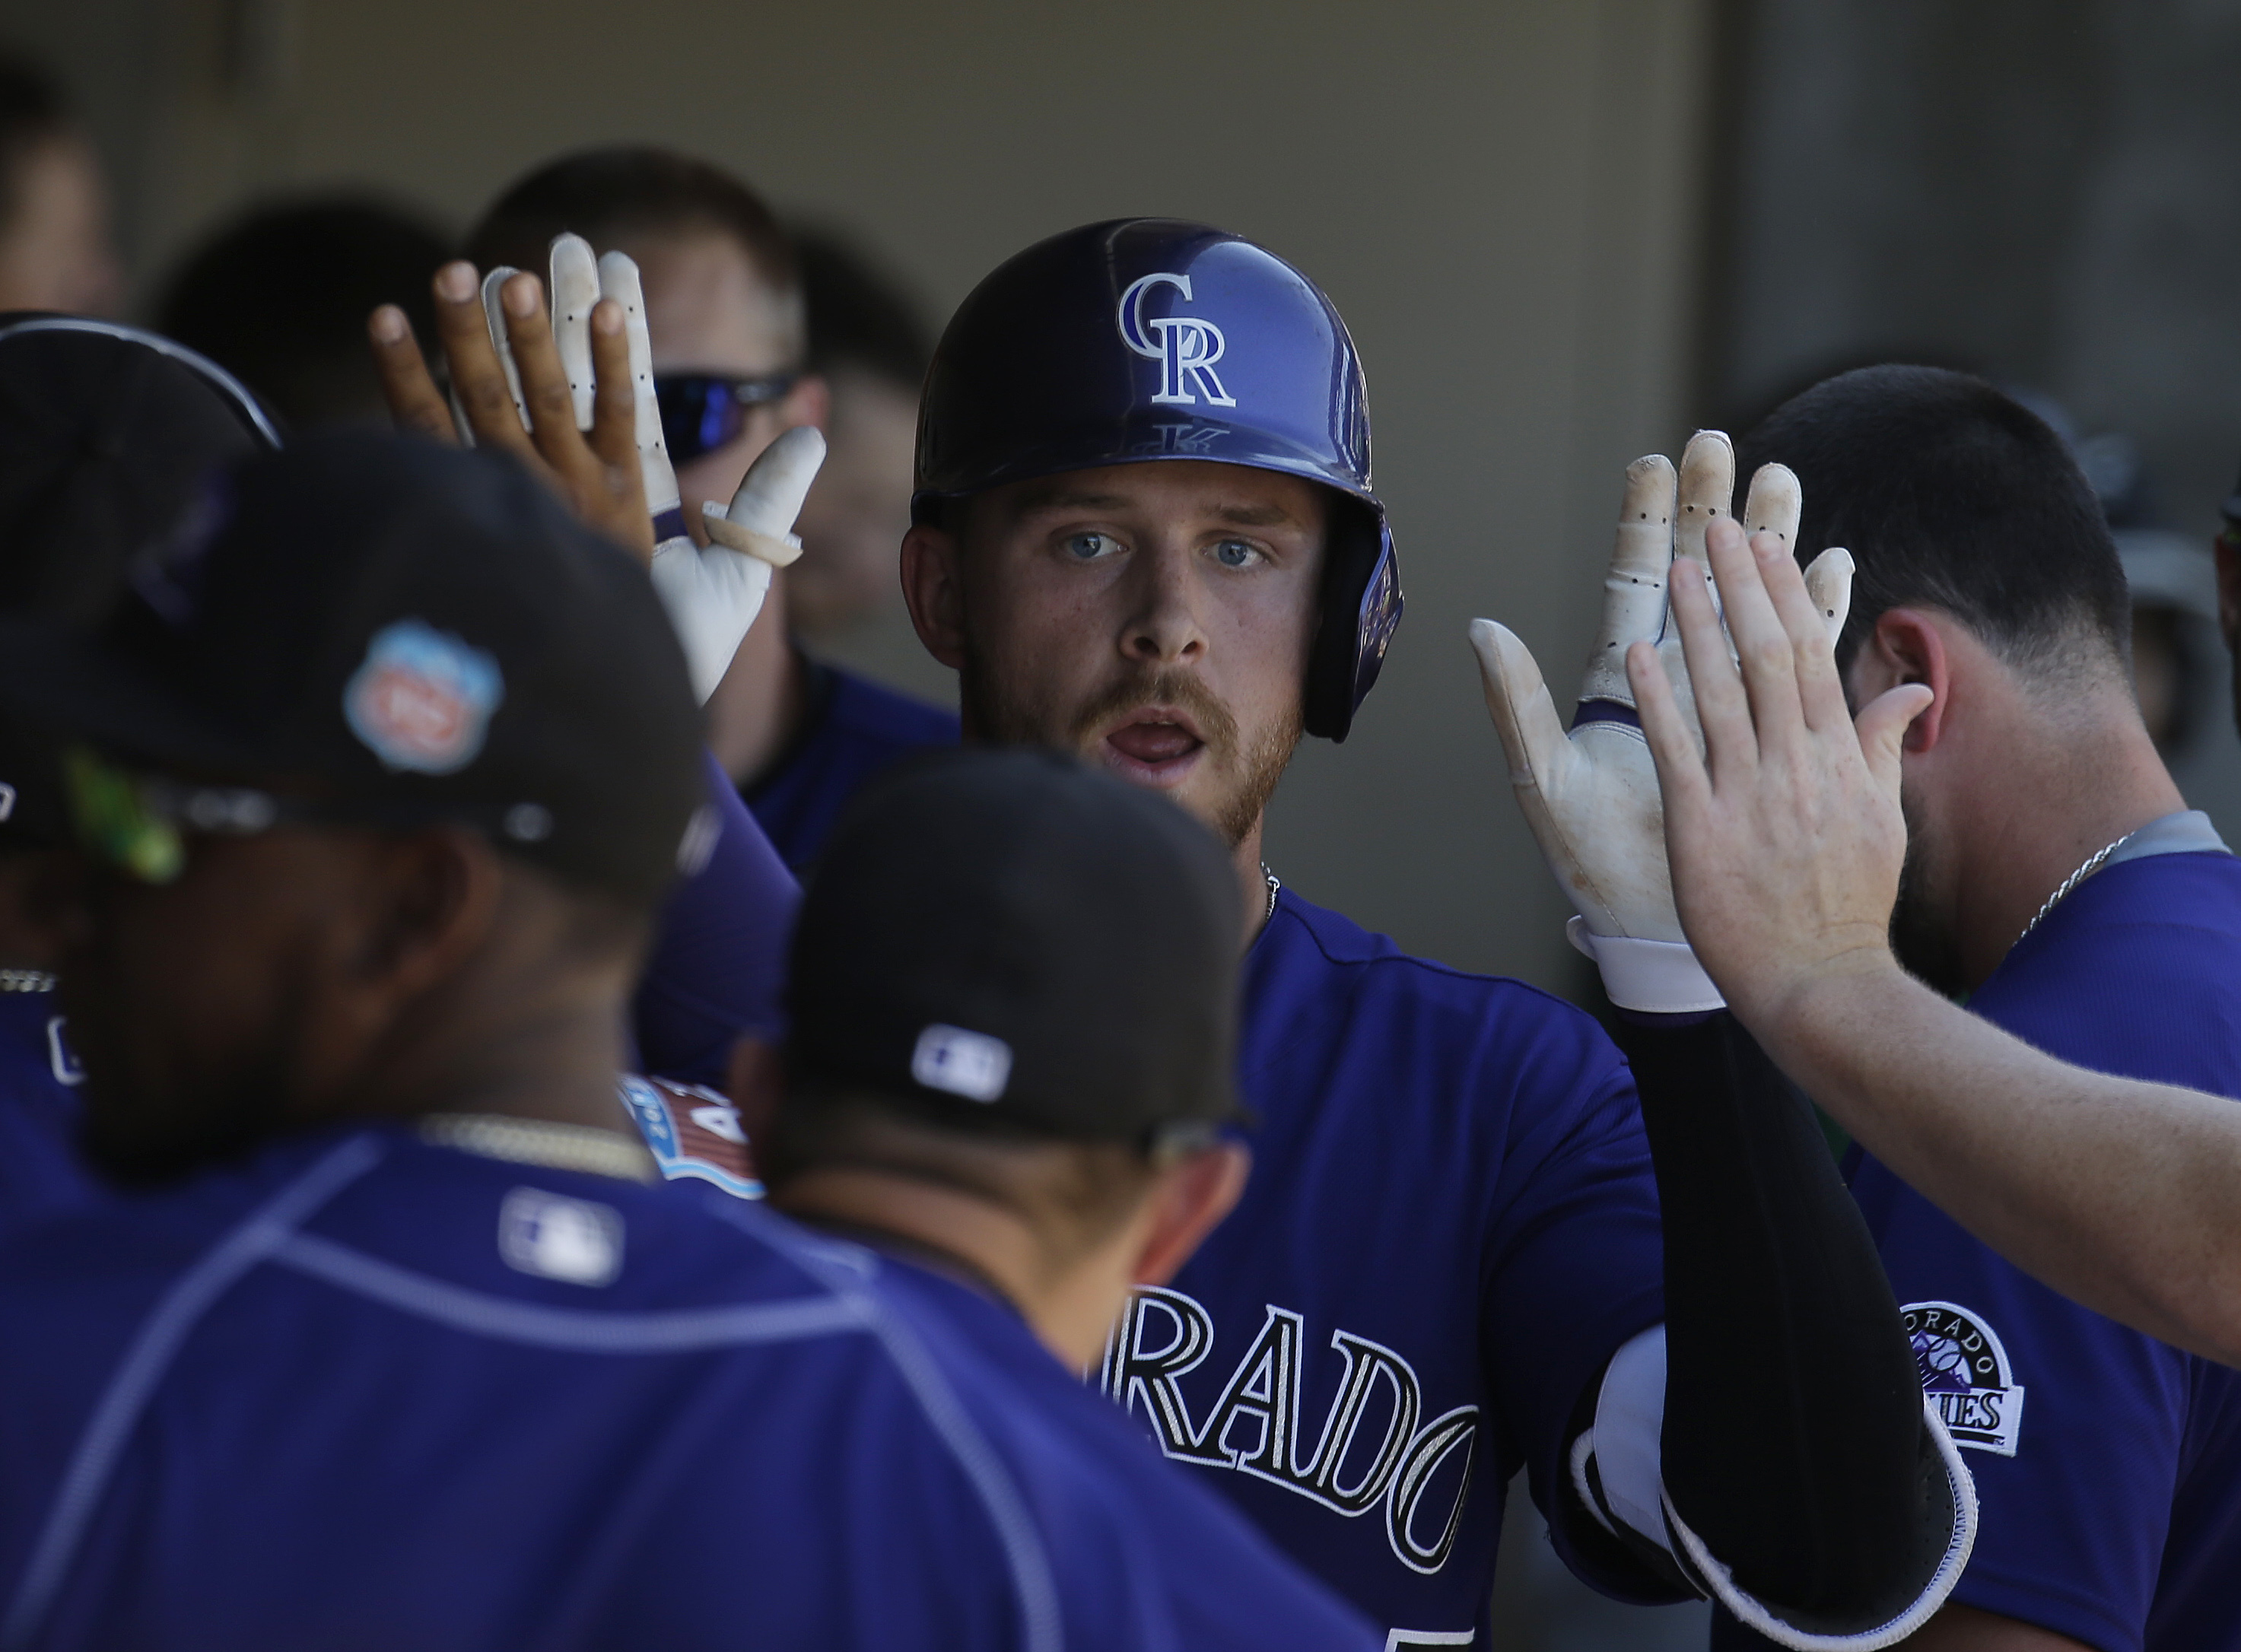 Colorado Rockies' Trevor Story celebrates with teammates after hitting a solo home run during the third inning of a spring training baseball game against the Texas Rangers, Saturday, March 26, 2016, in Scottsdale, Ariz. (AP Photo/Darron Cummings)